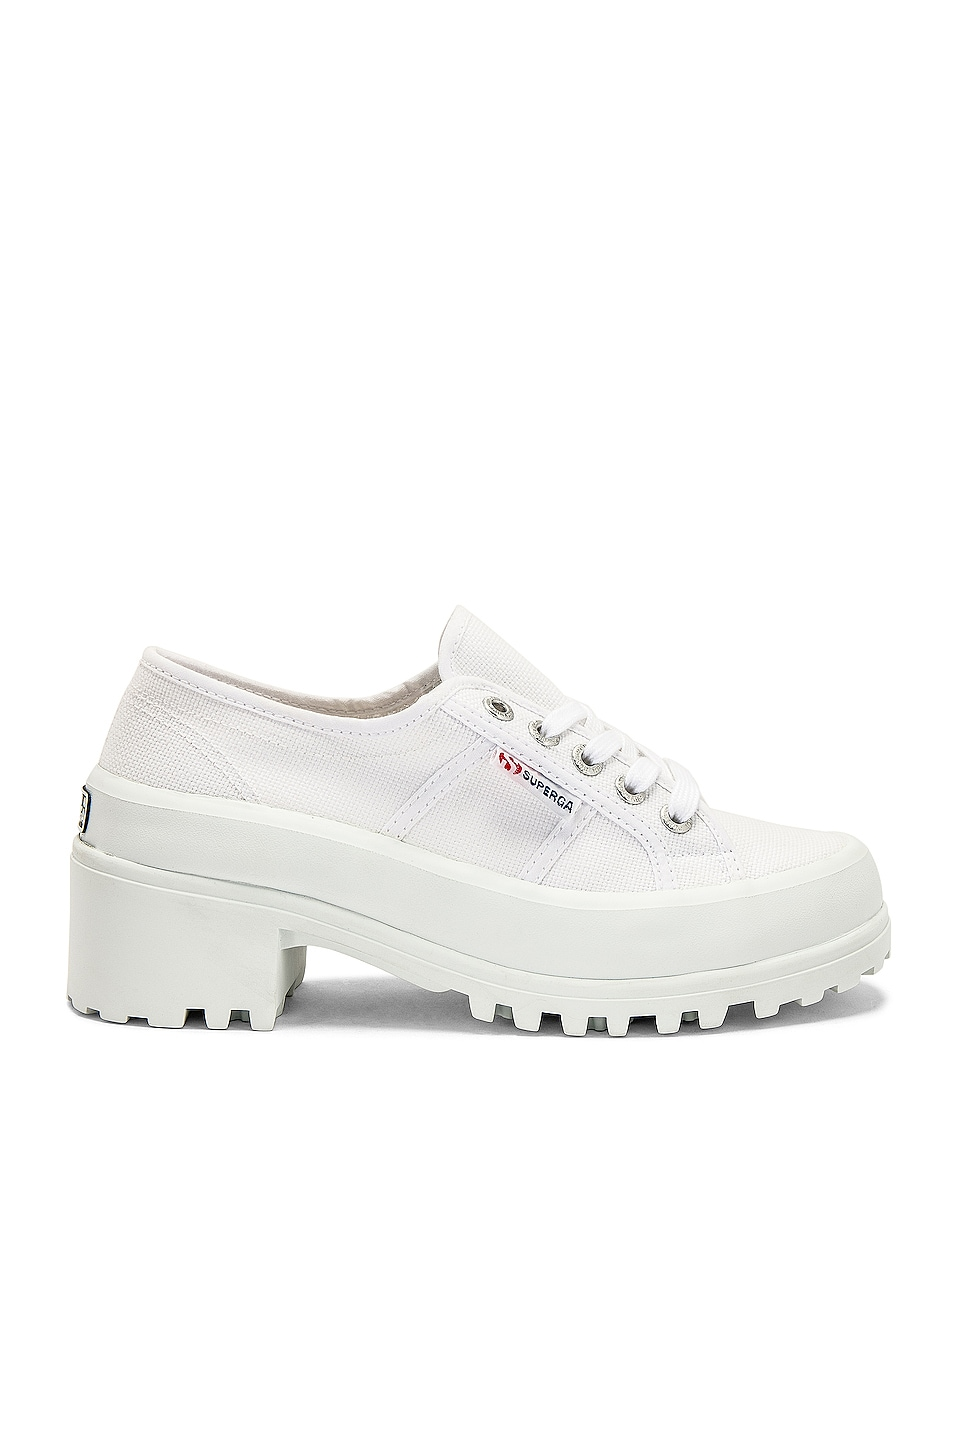 Superga 4850 COTW Sneaker in White